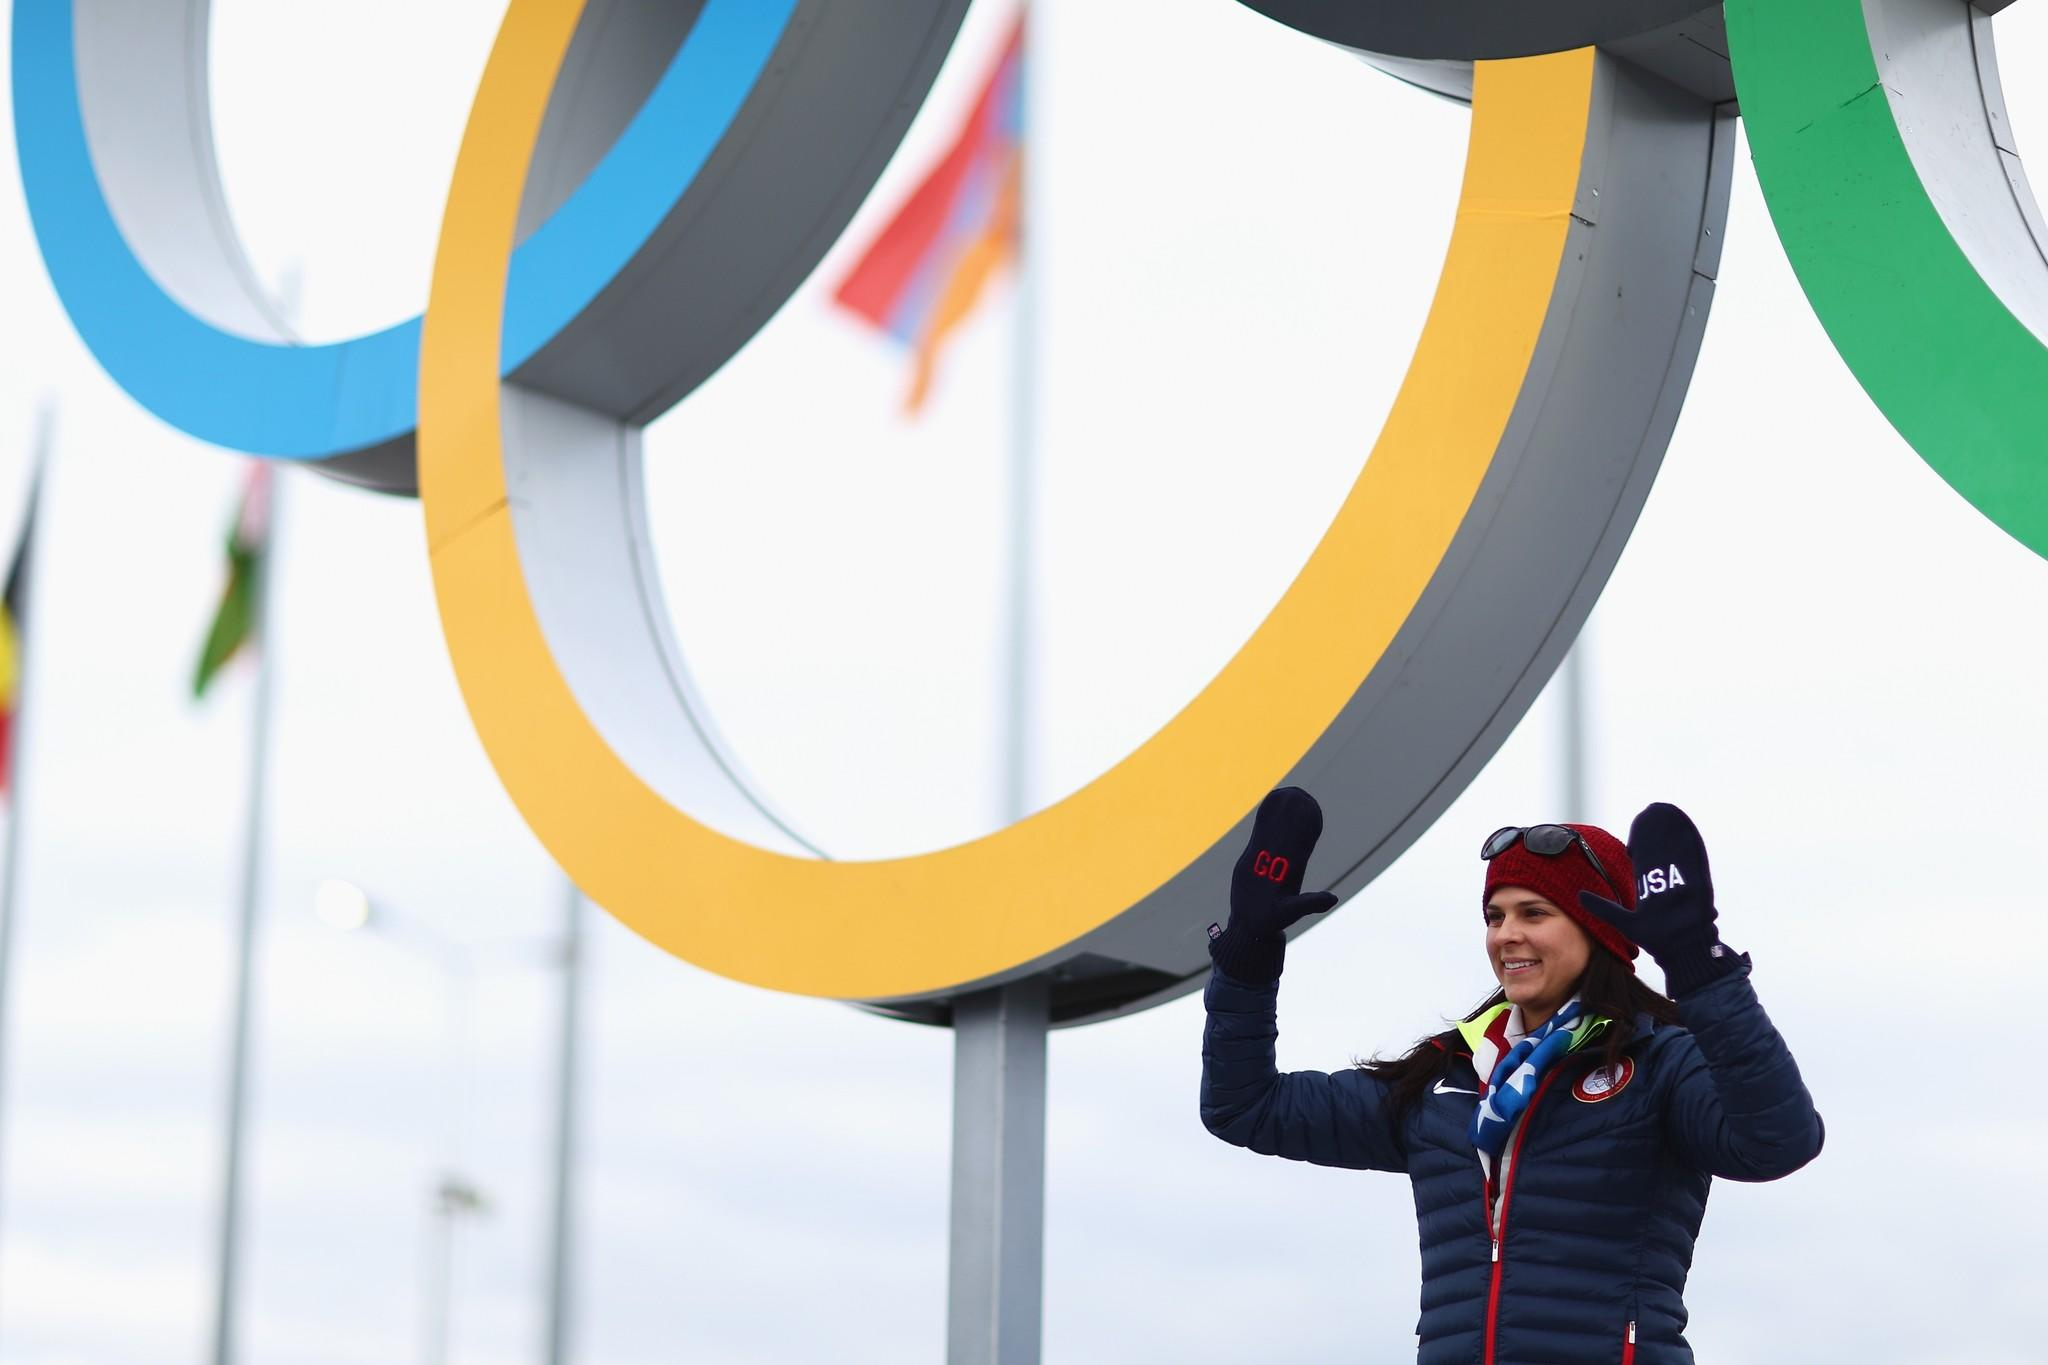 Speedskater Brittany Bowe poses in front of the Olympic rings. (Clive Mason/Getty Photo)